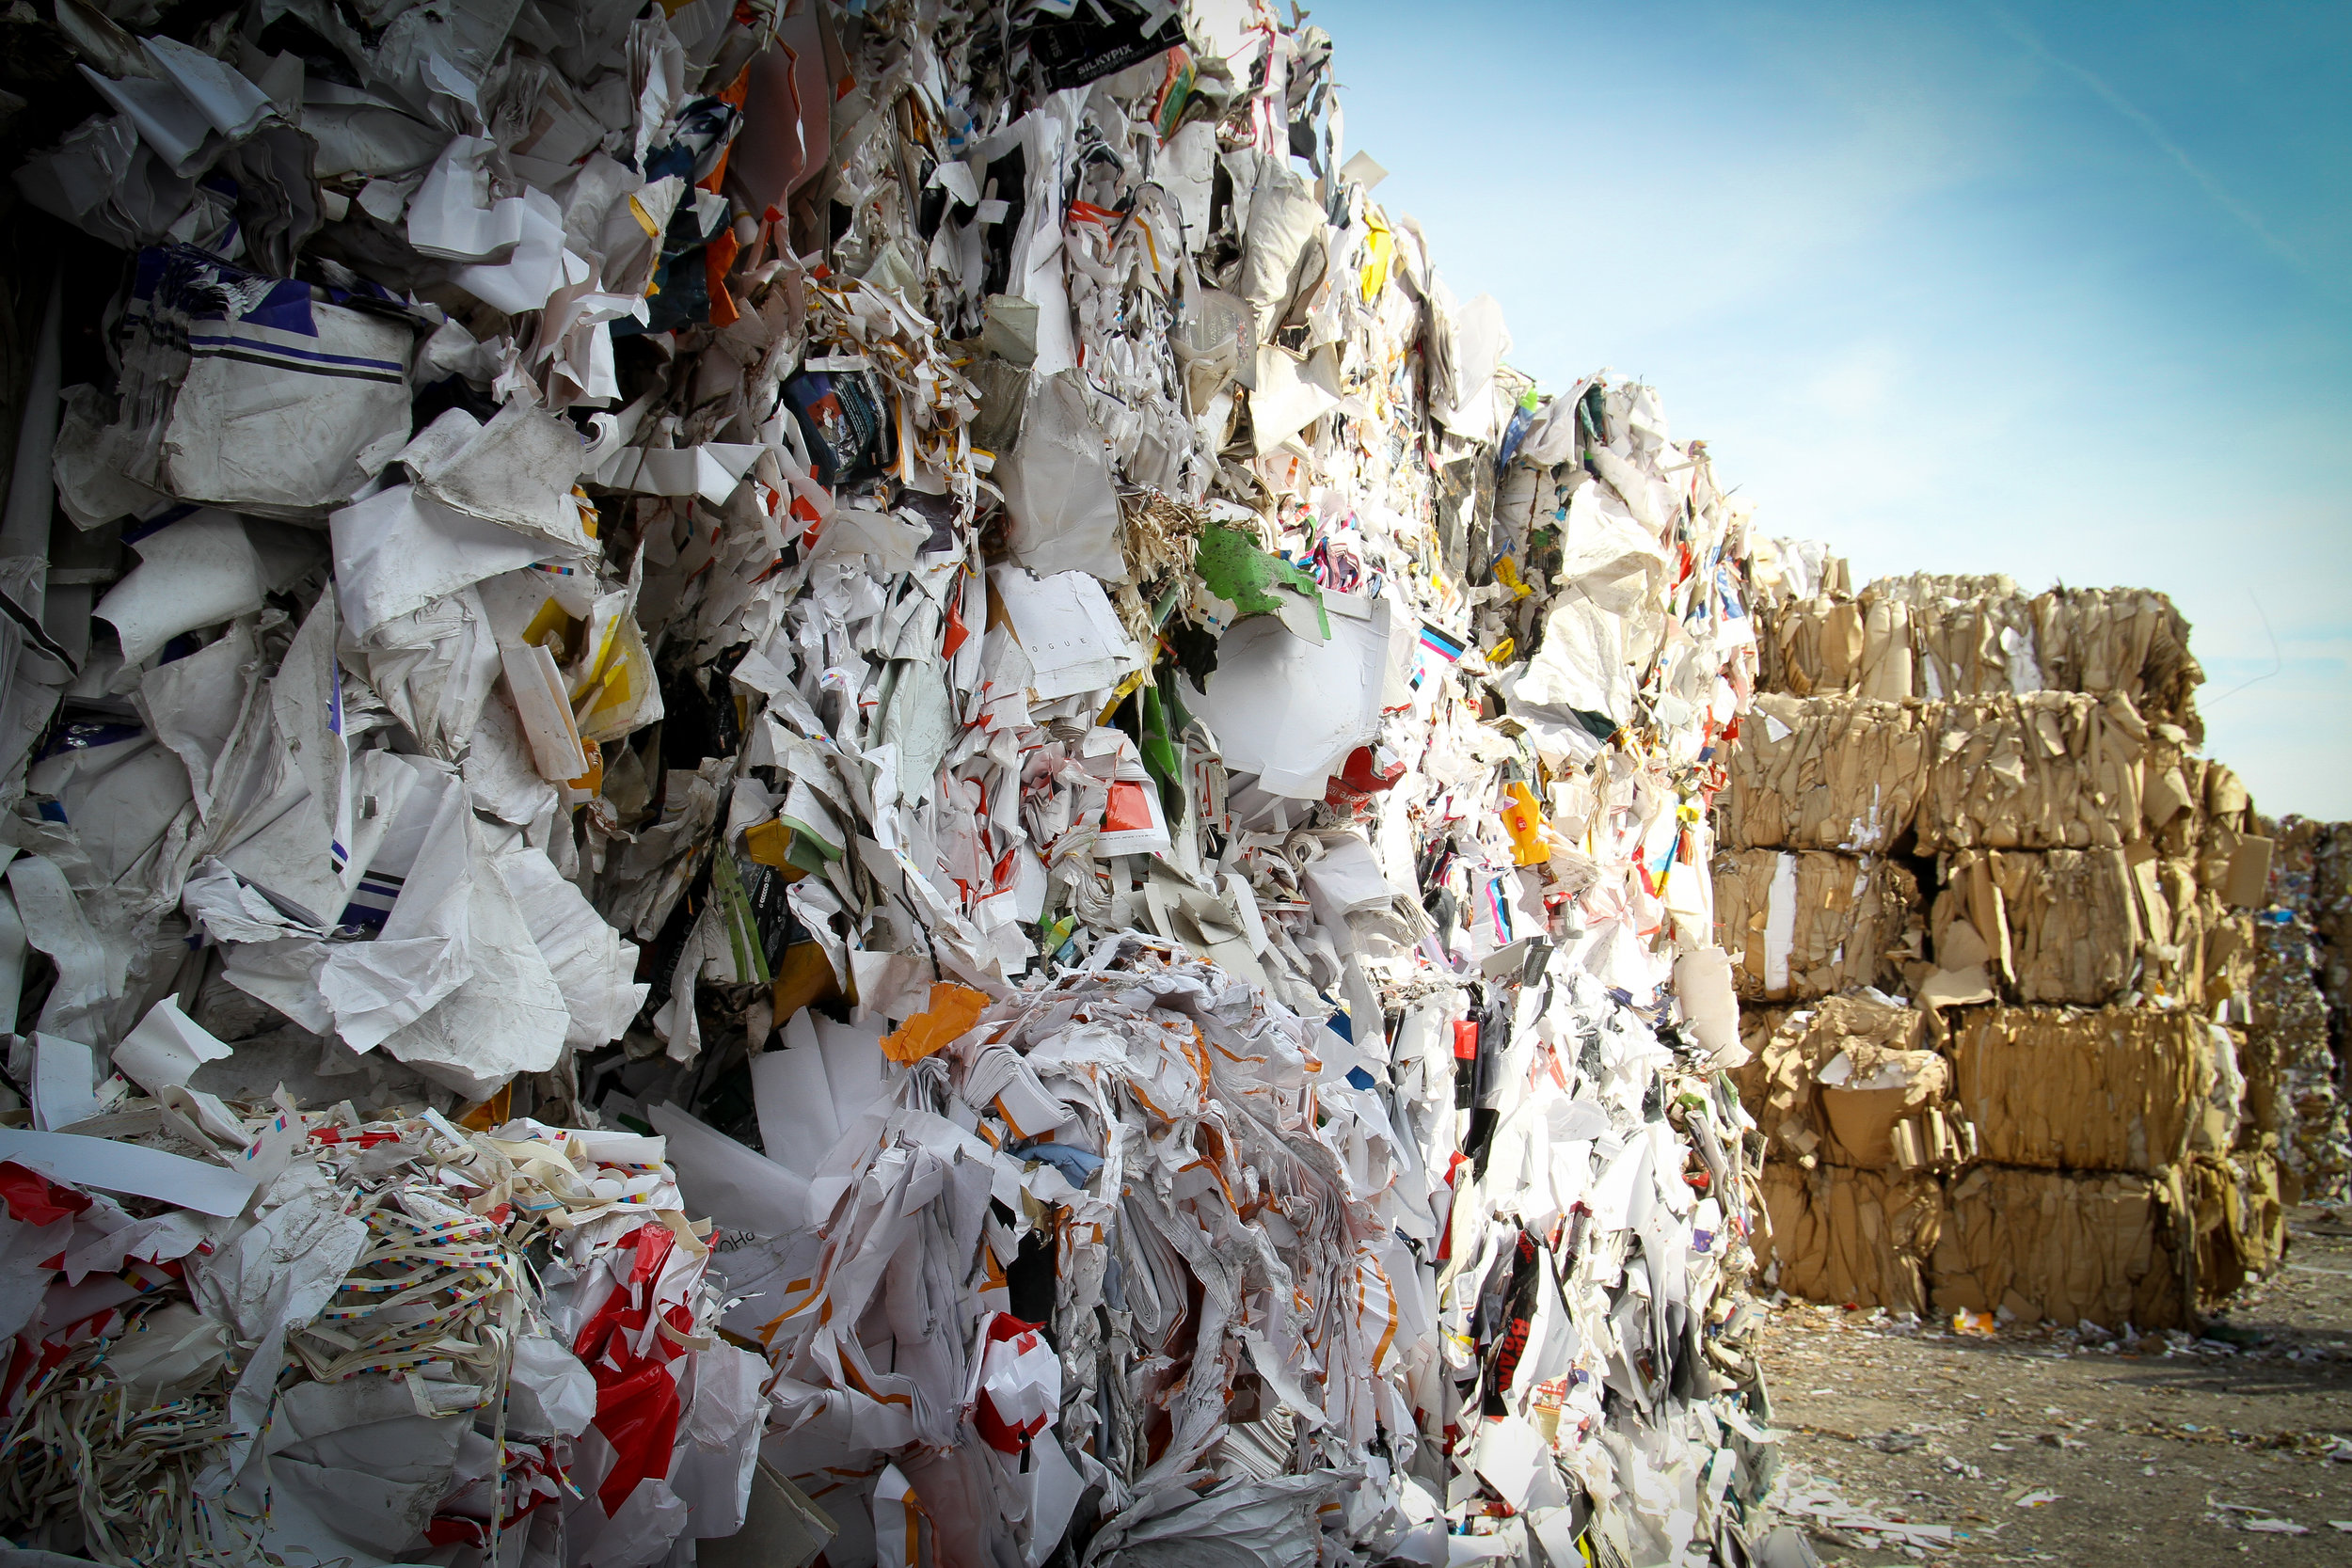 Waste ManagementSector Report - The sector has seen significant investment from both corporate and private equity in the past year, which have led to high levels of consolidation and high market pricing for the correctly positioned waste asset.Read full report →